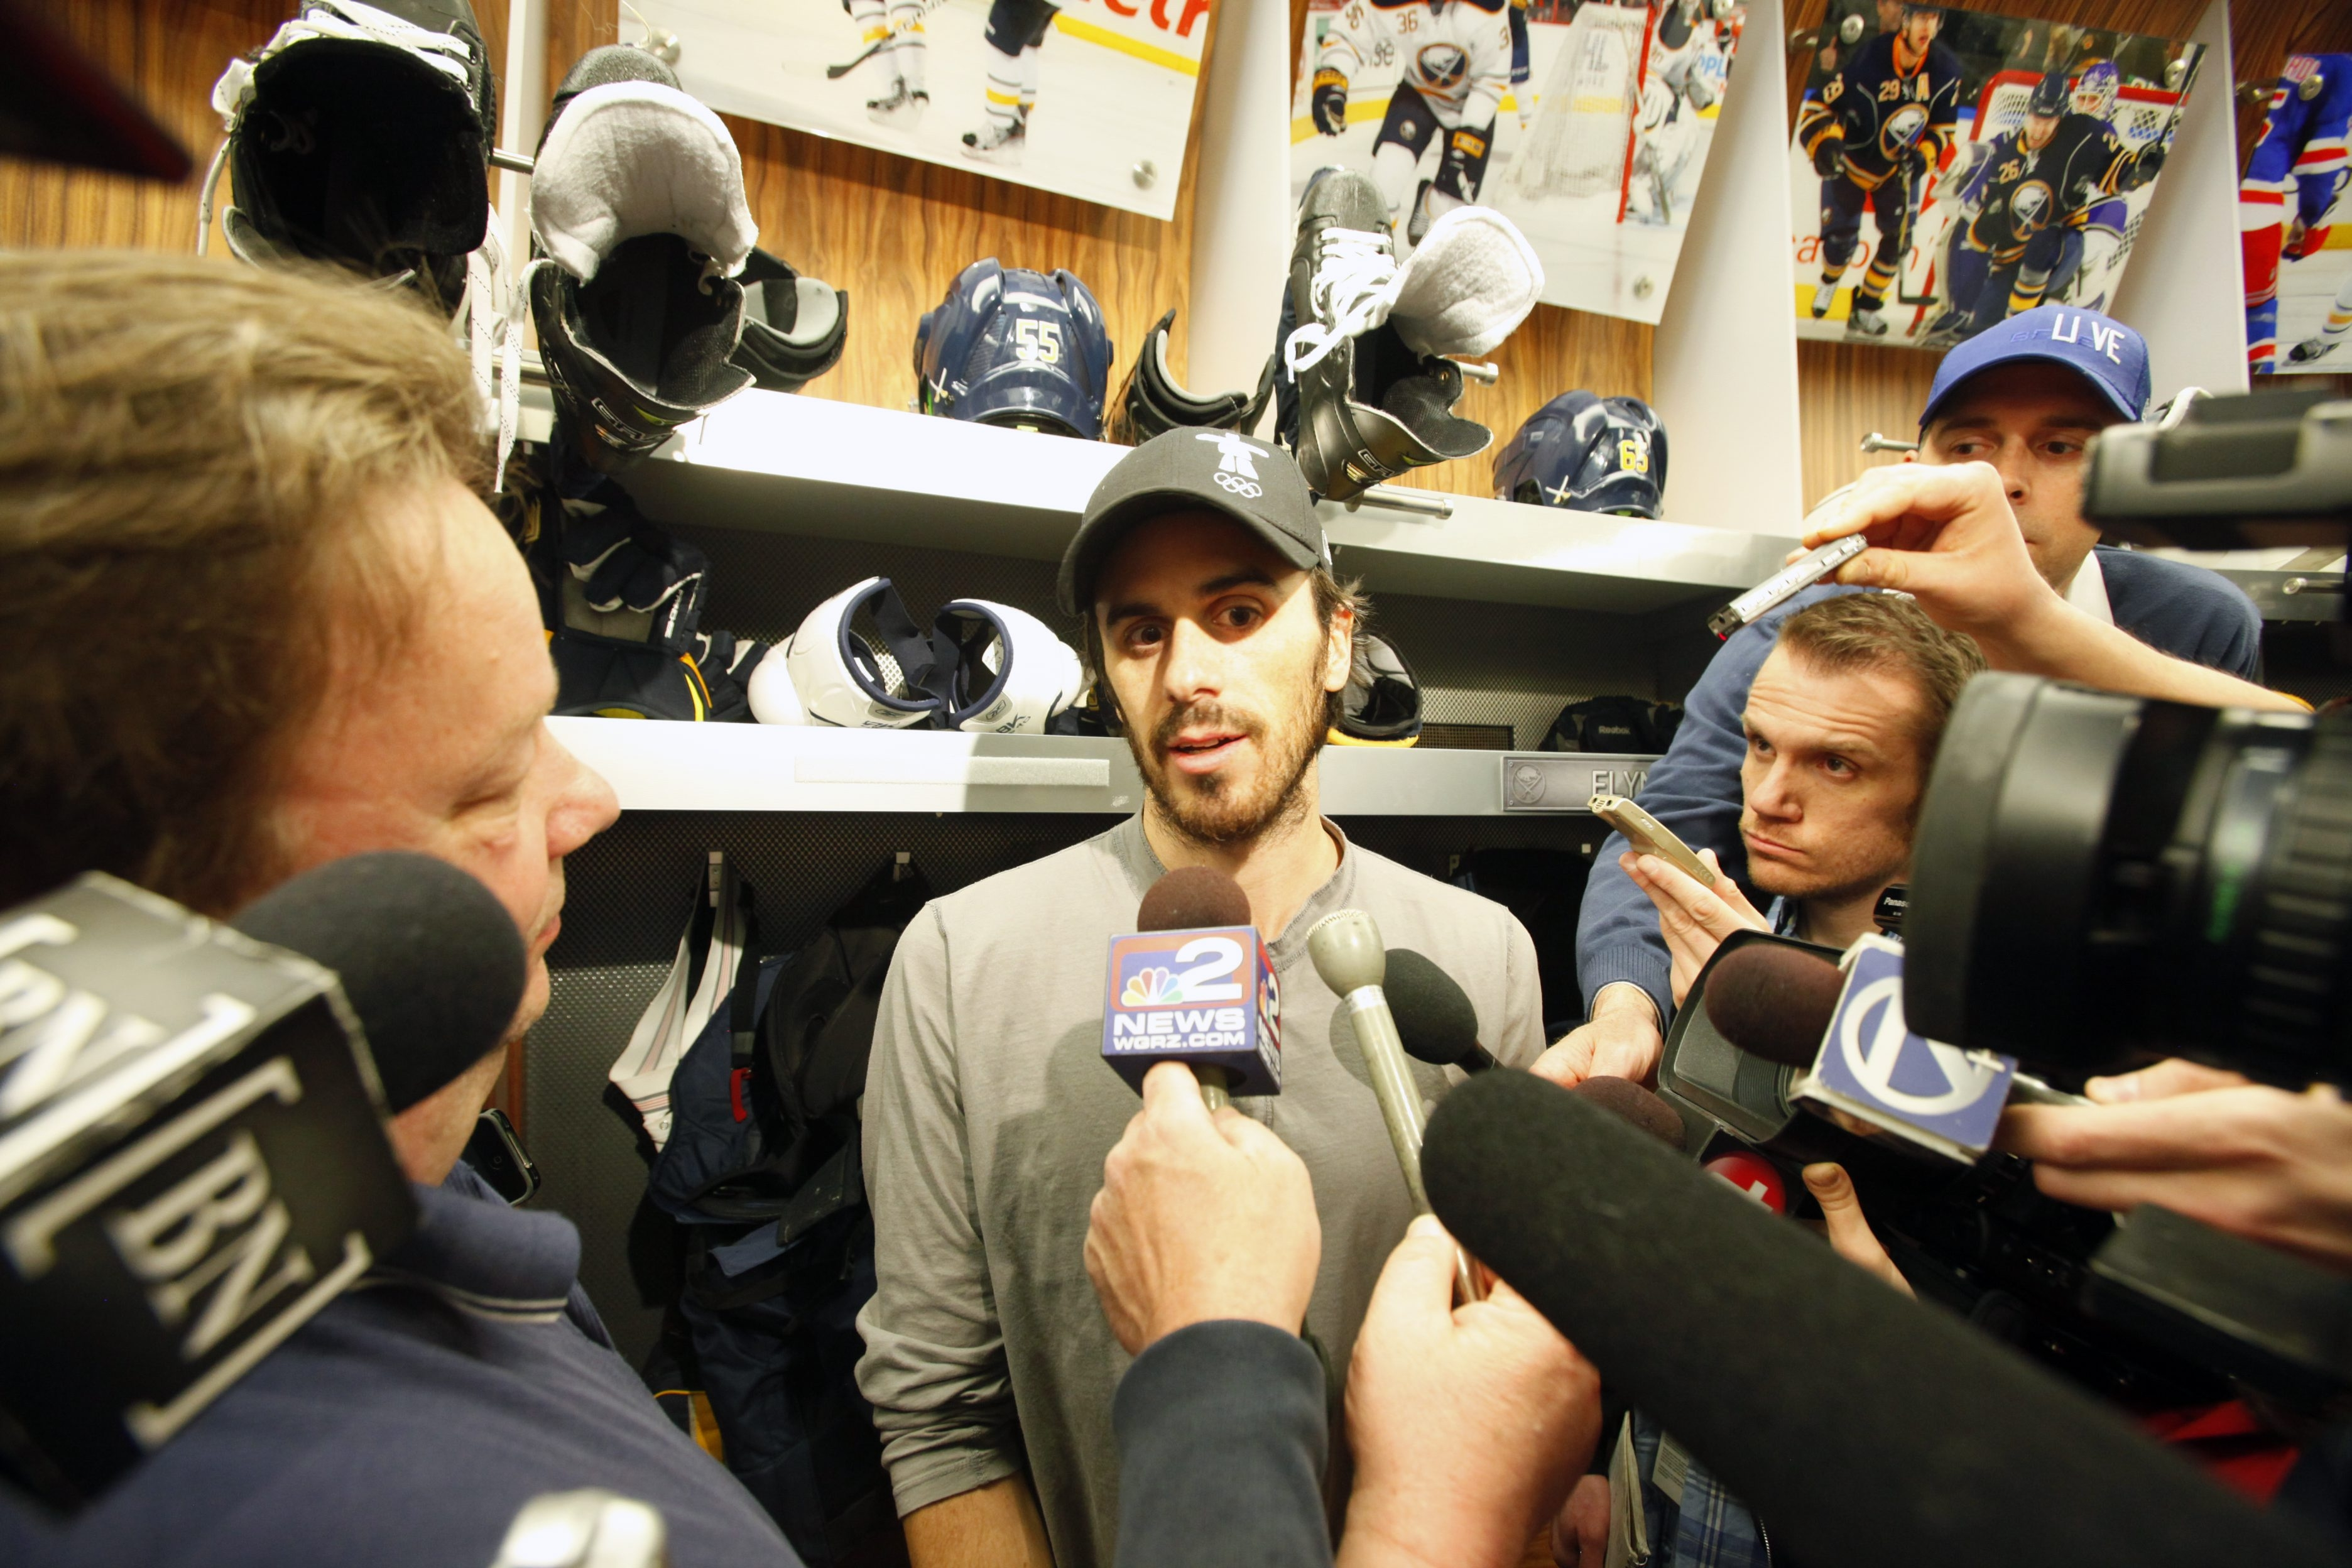 Goaltender Ryan Miller, one of the team's two best players, may be dealt before he can leave without the Sabres getting any compensation.